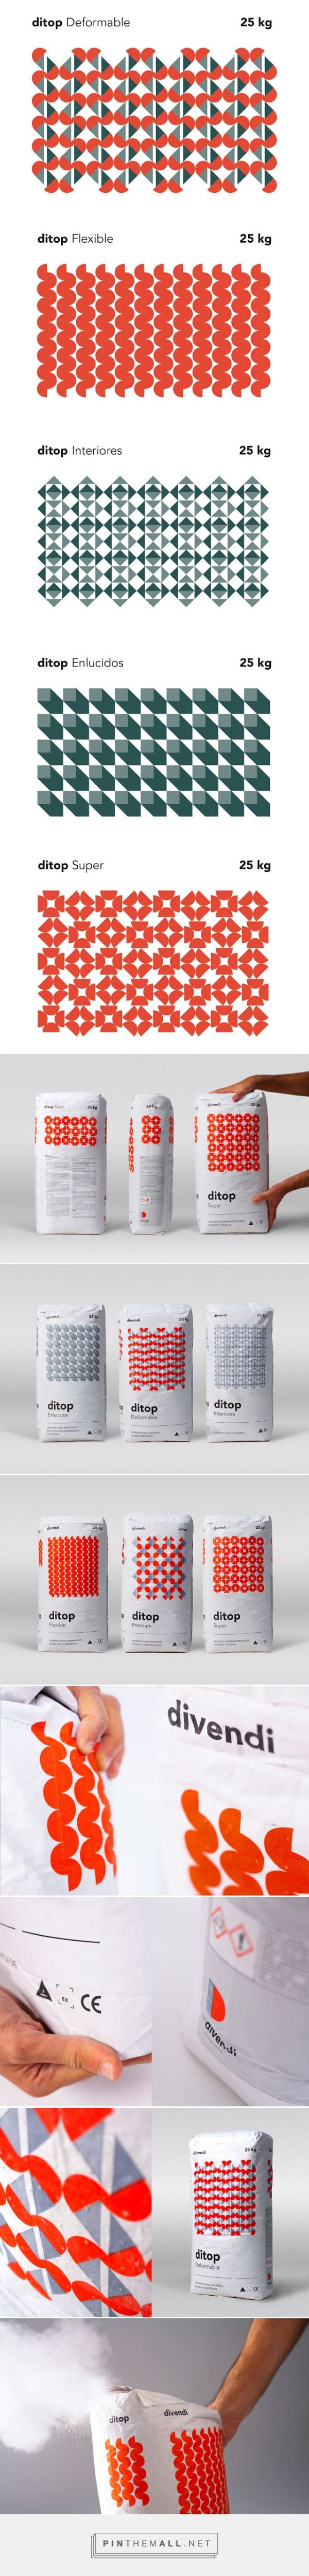 Ditop ‪‎Cement‬ ‪‎Packaging‬ ‪‎Patterns‬ designed by Rubio & del Amo - http://www.packagingoftheworld.com/2015/12/ditop-cement.html